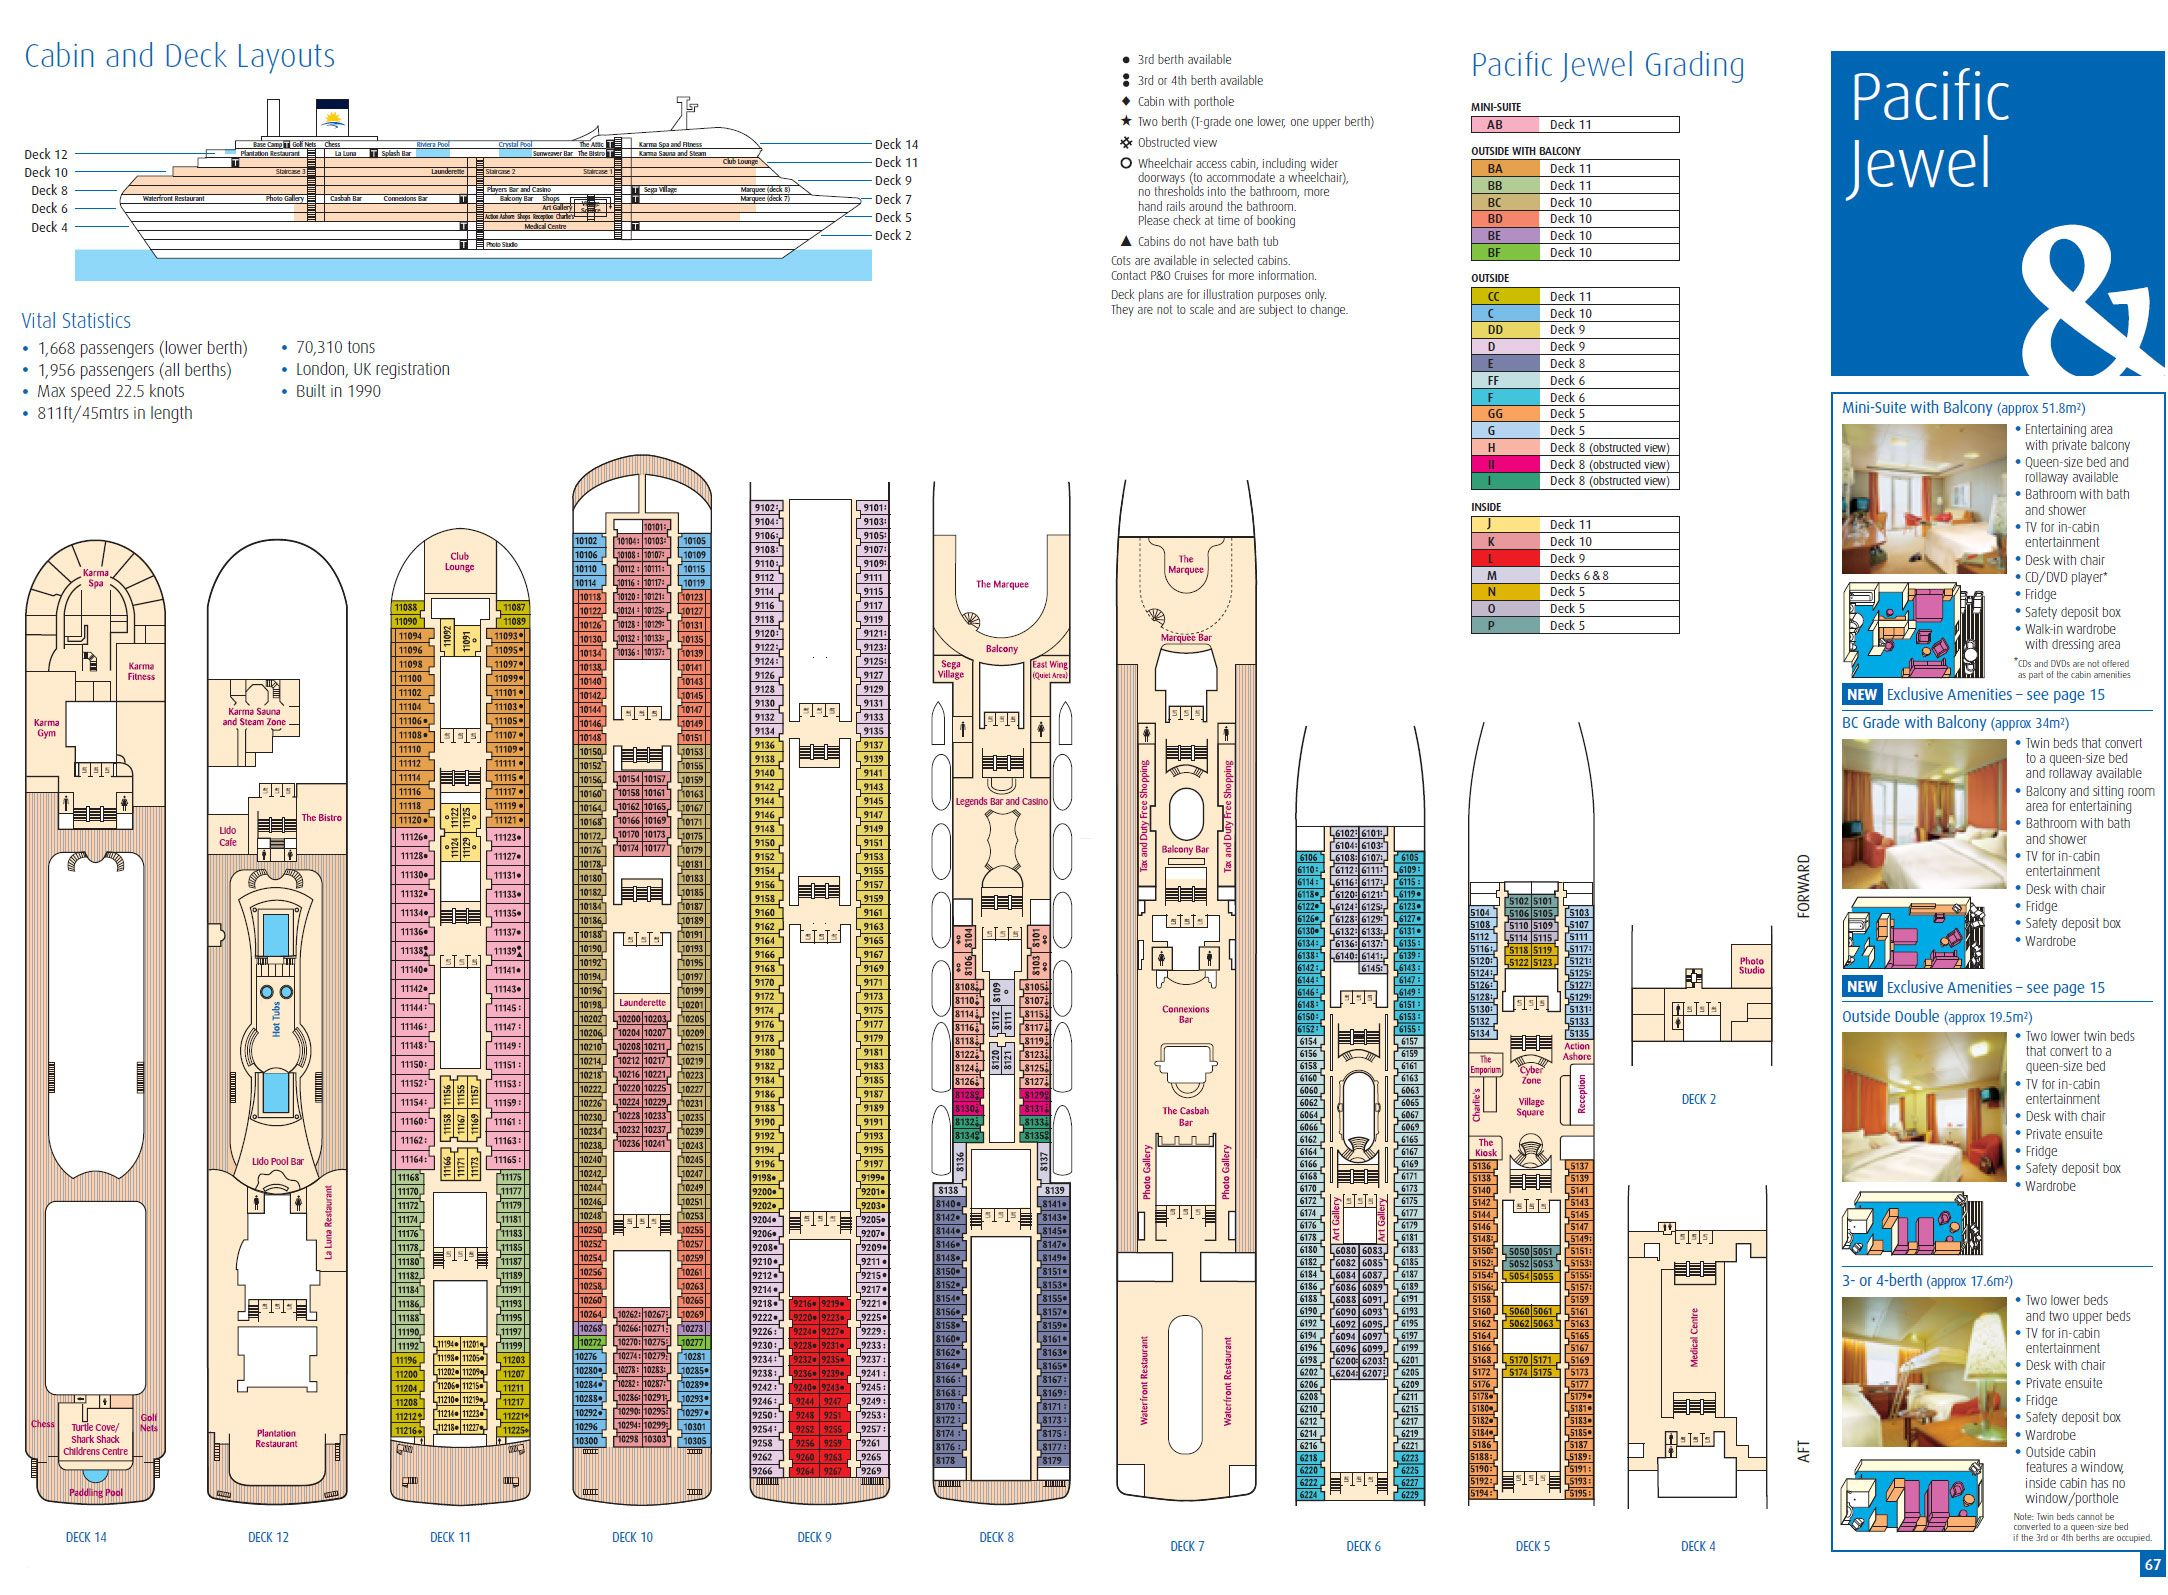 Deck plan for pacific jewel travel cruises pinterest image deck plan for pacific jewel baanklon Choice Image